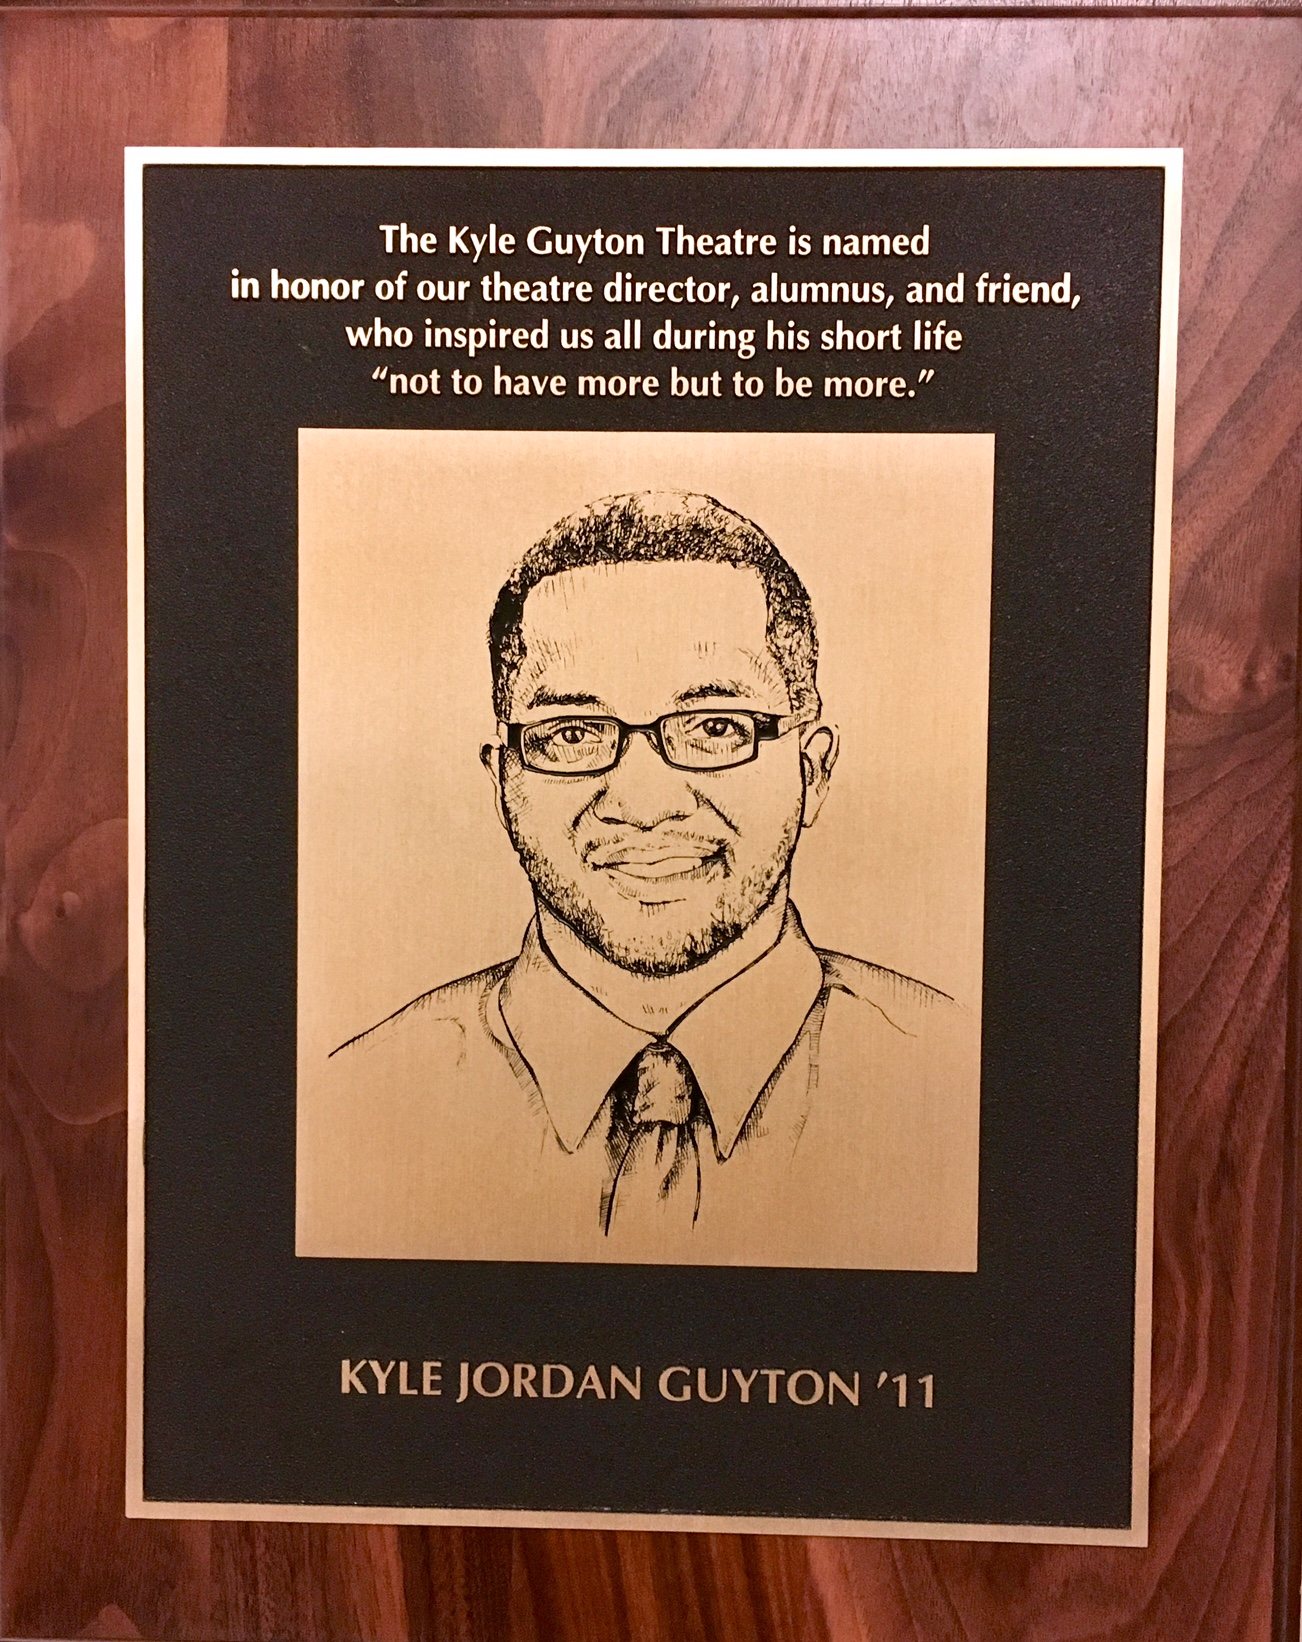 The above plaque hangs outside the Kyle Guyton Theatre located at Bishop Chatard